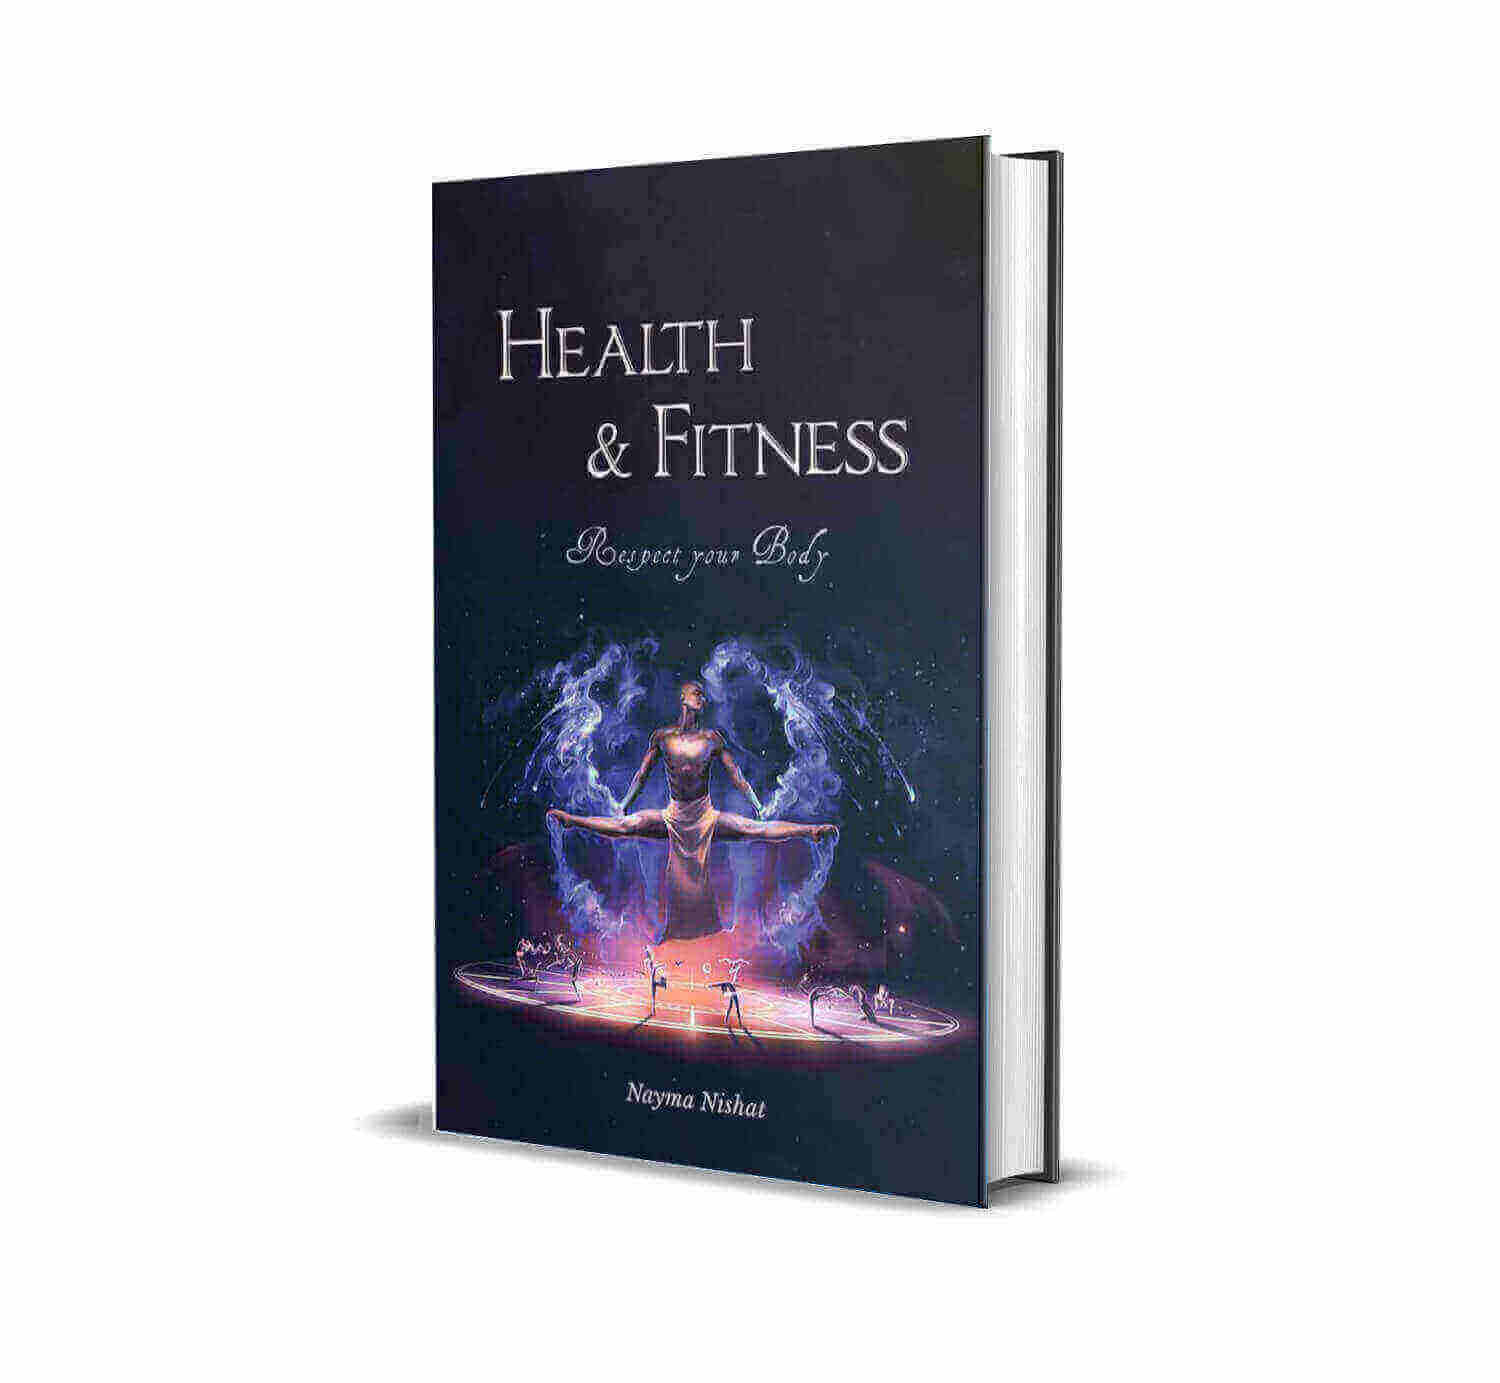 The Health & Fitness Book